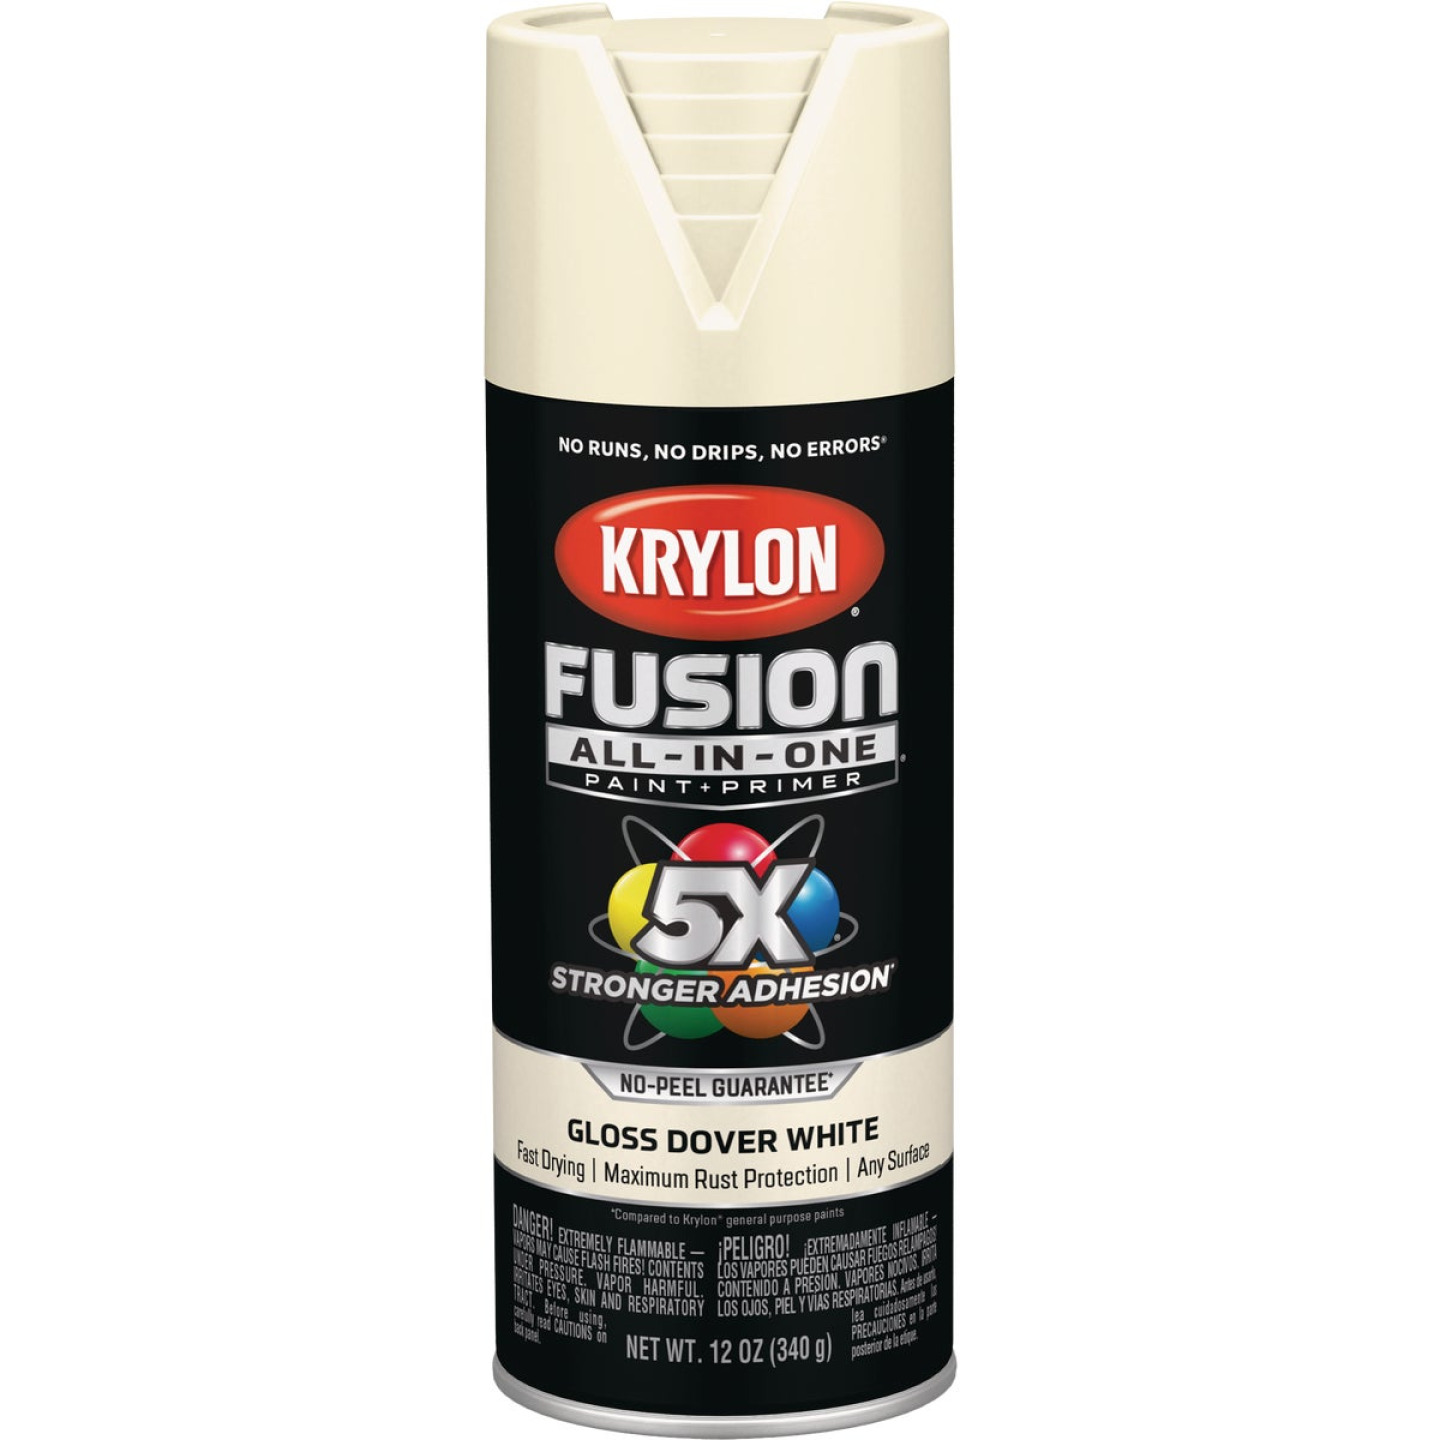 Krylon Fusion All-In-One Gloss Spray Paint & Primer, Dover White Image 1